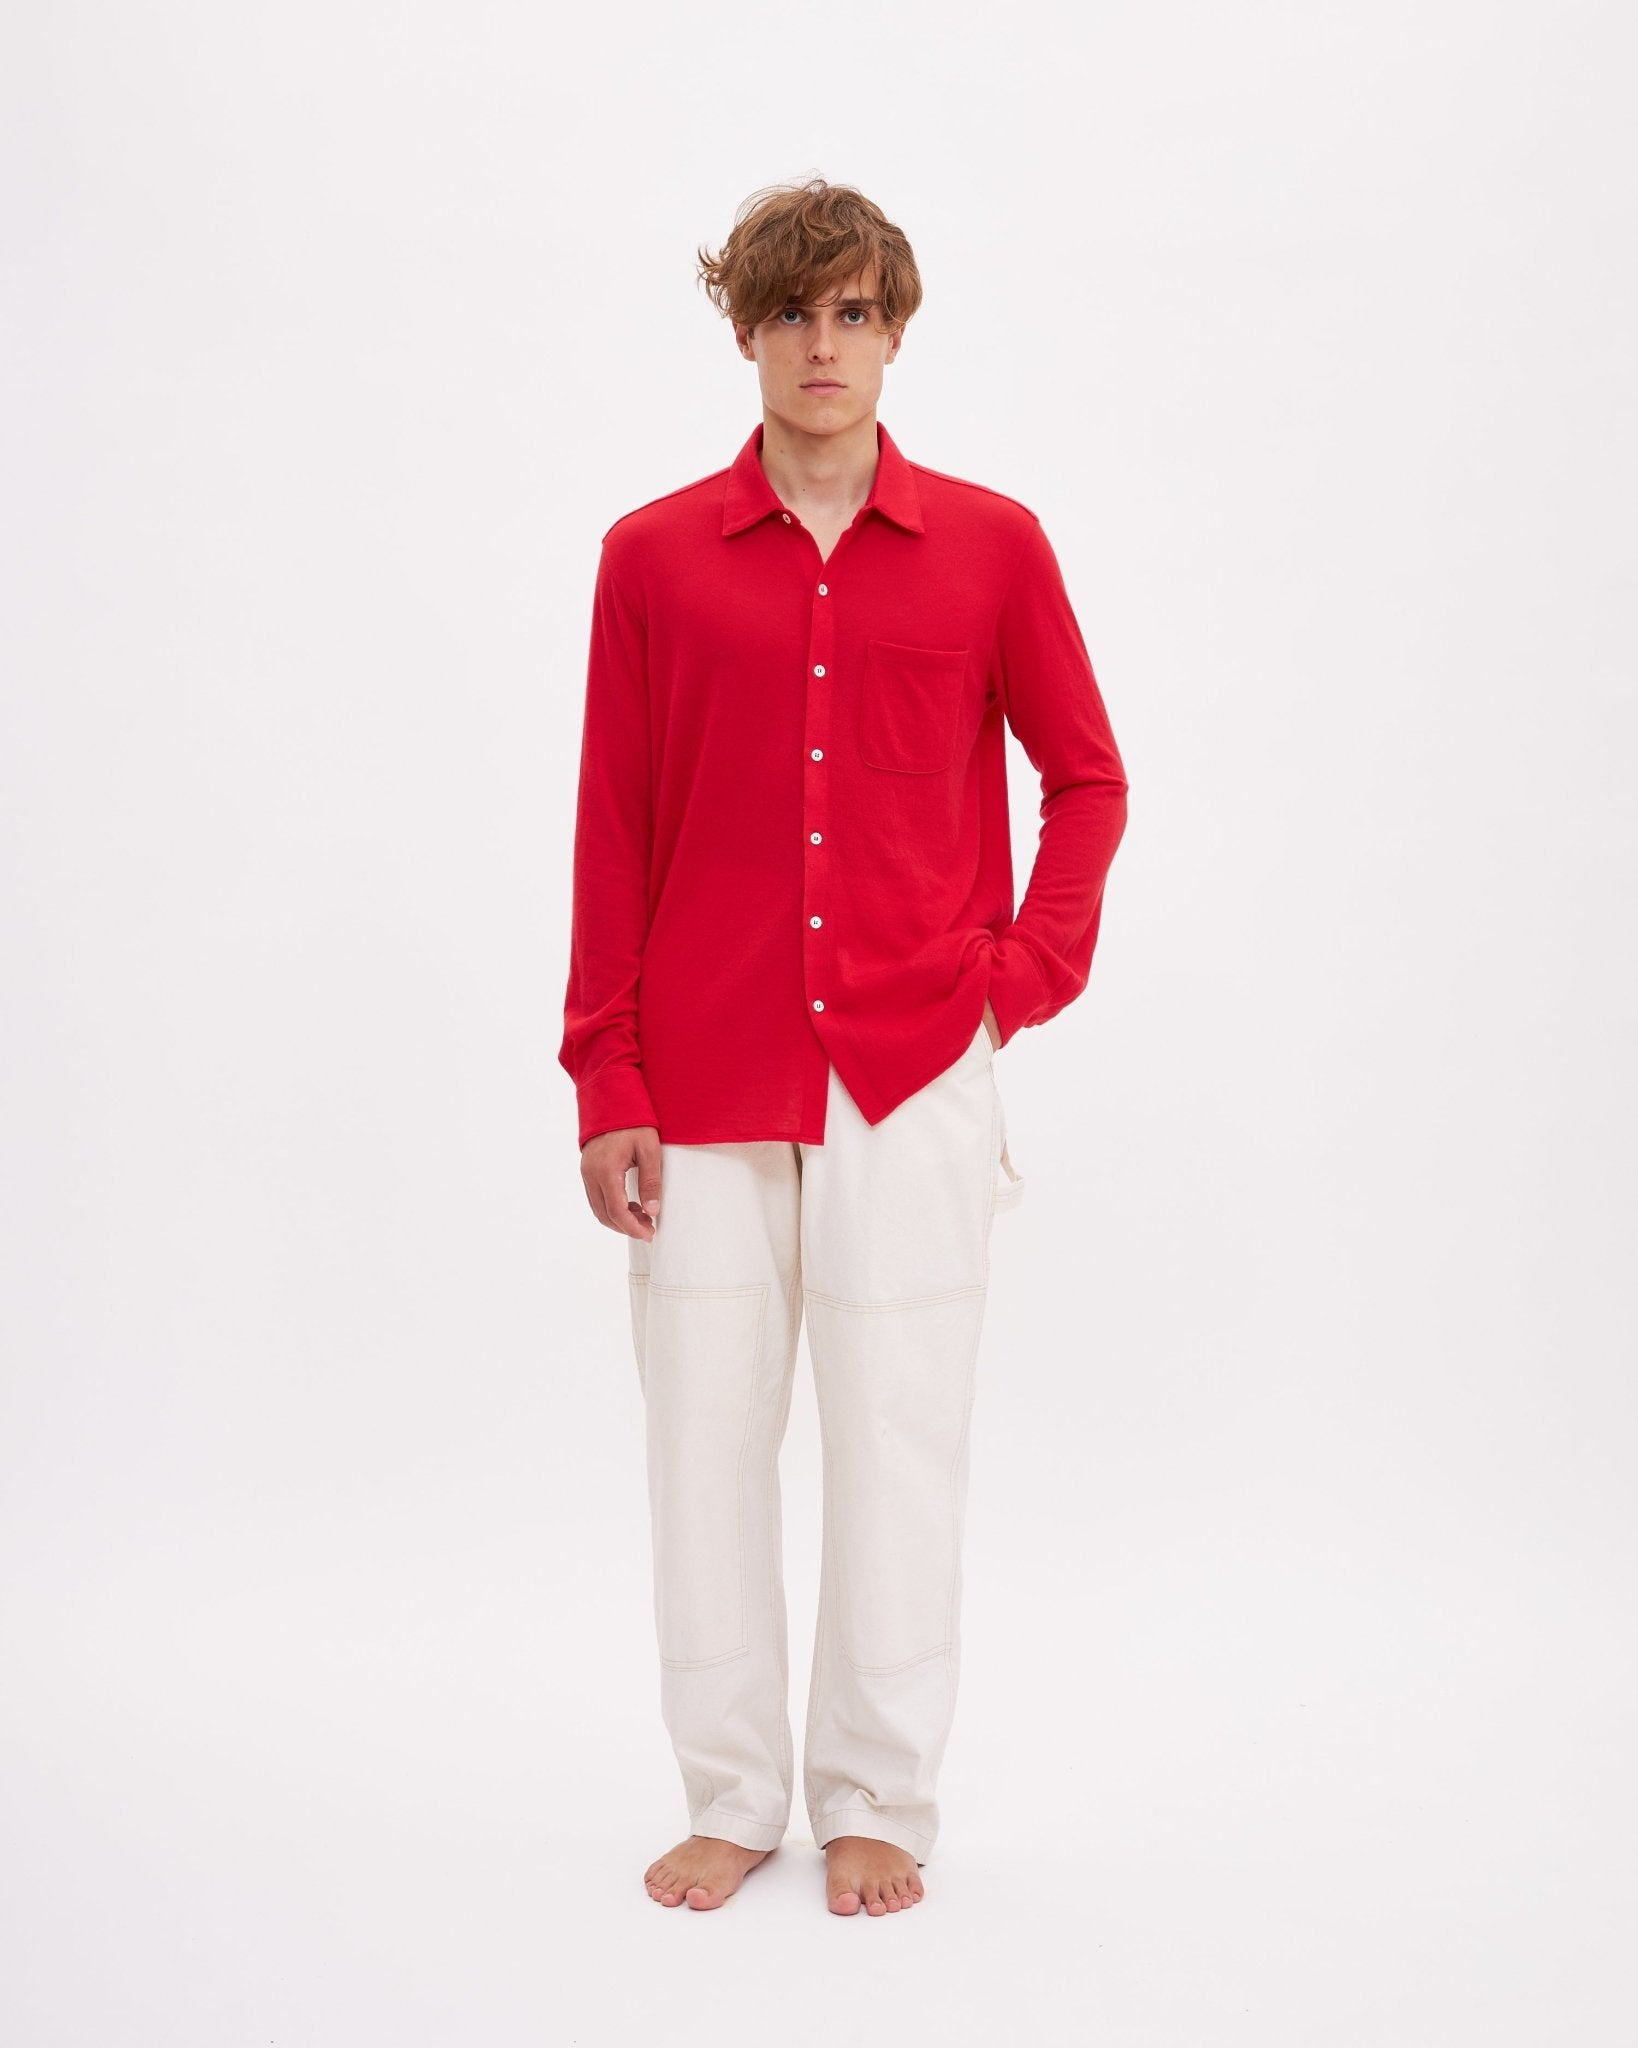 Bellariva Cashmere - Red - The Clothing LoungeLungomare